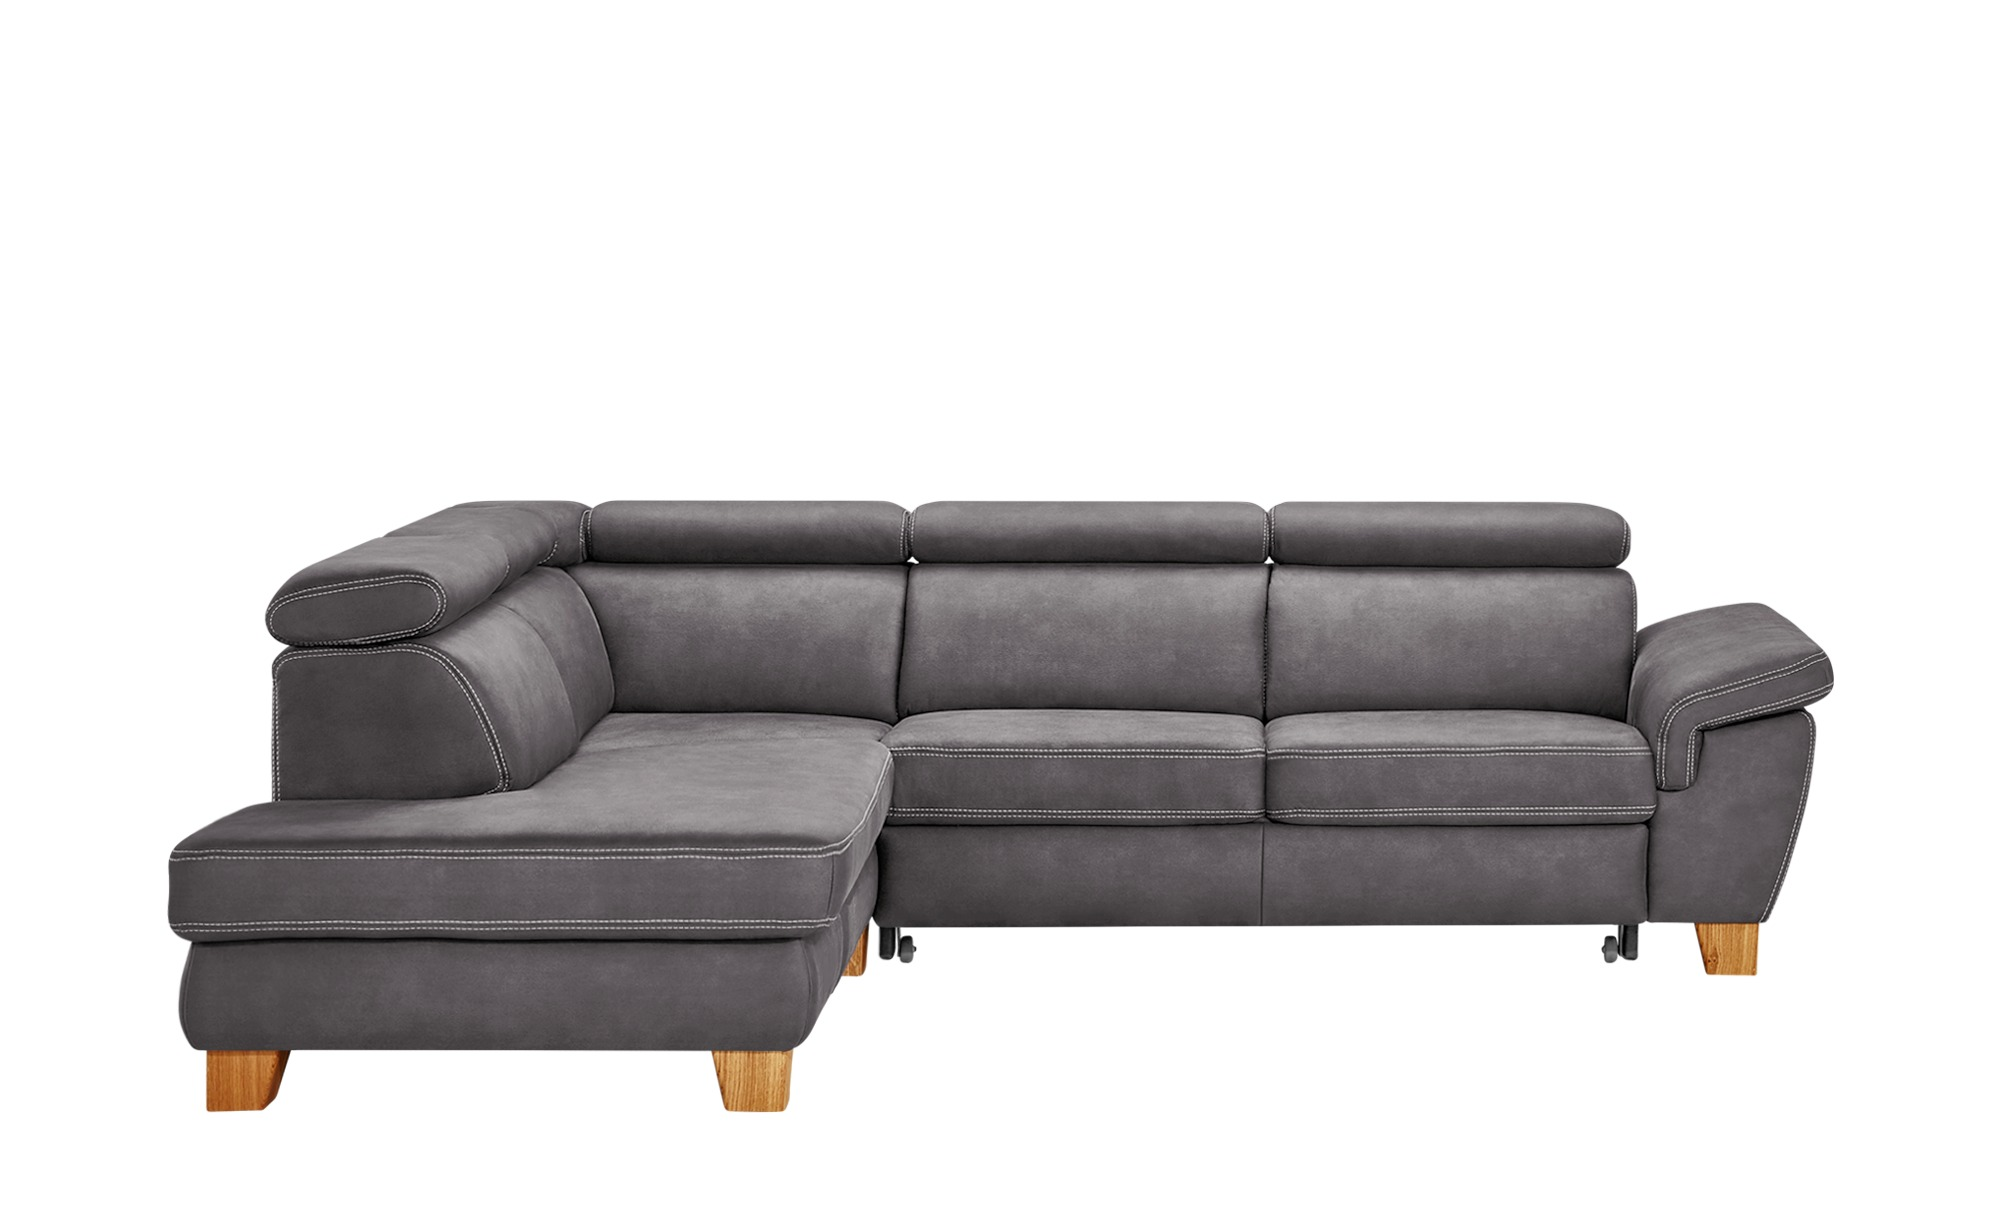 Big Sofa Günstig Roller Big Sofa Günstig Online Kaufen Review Home Co